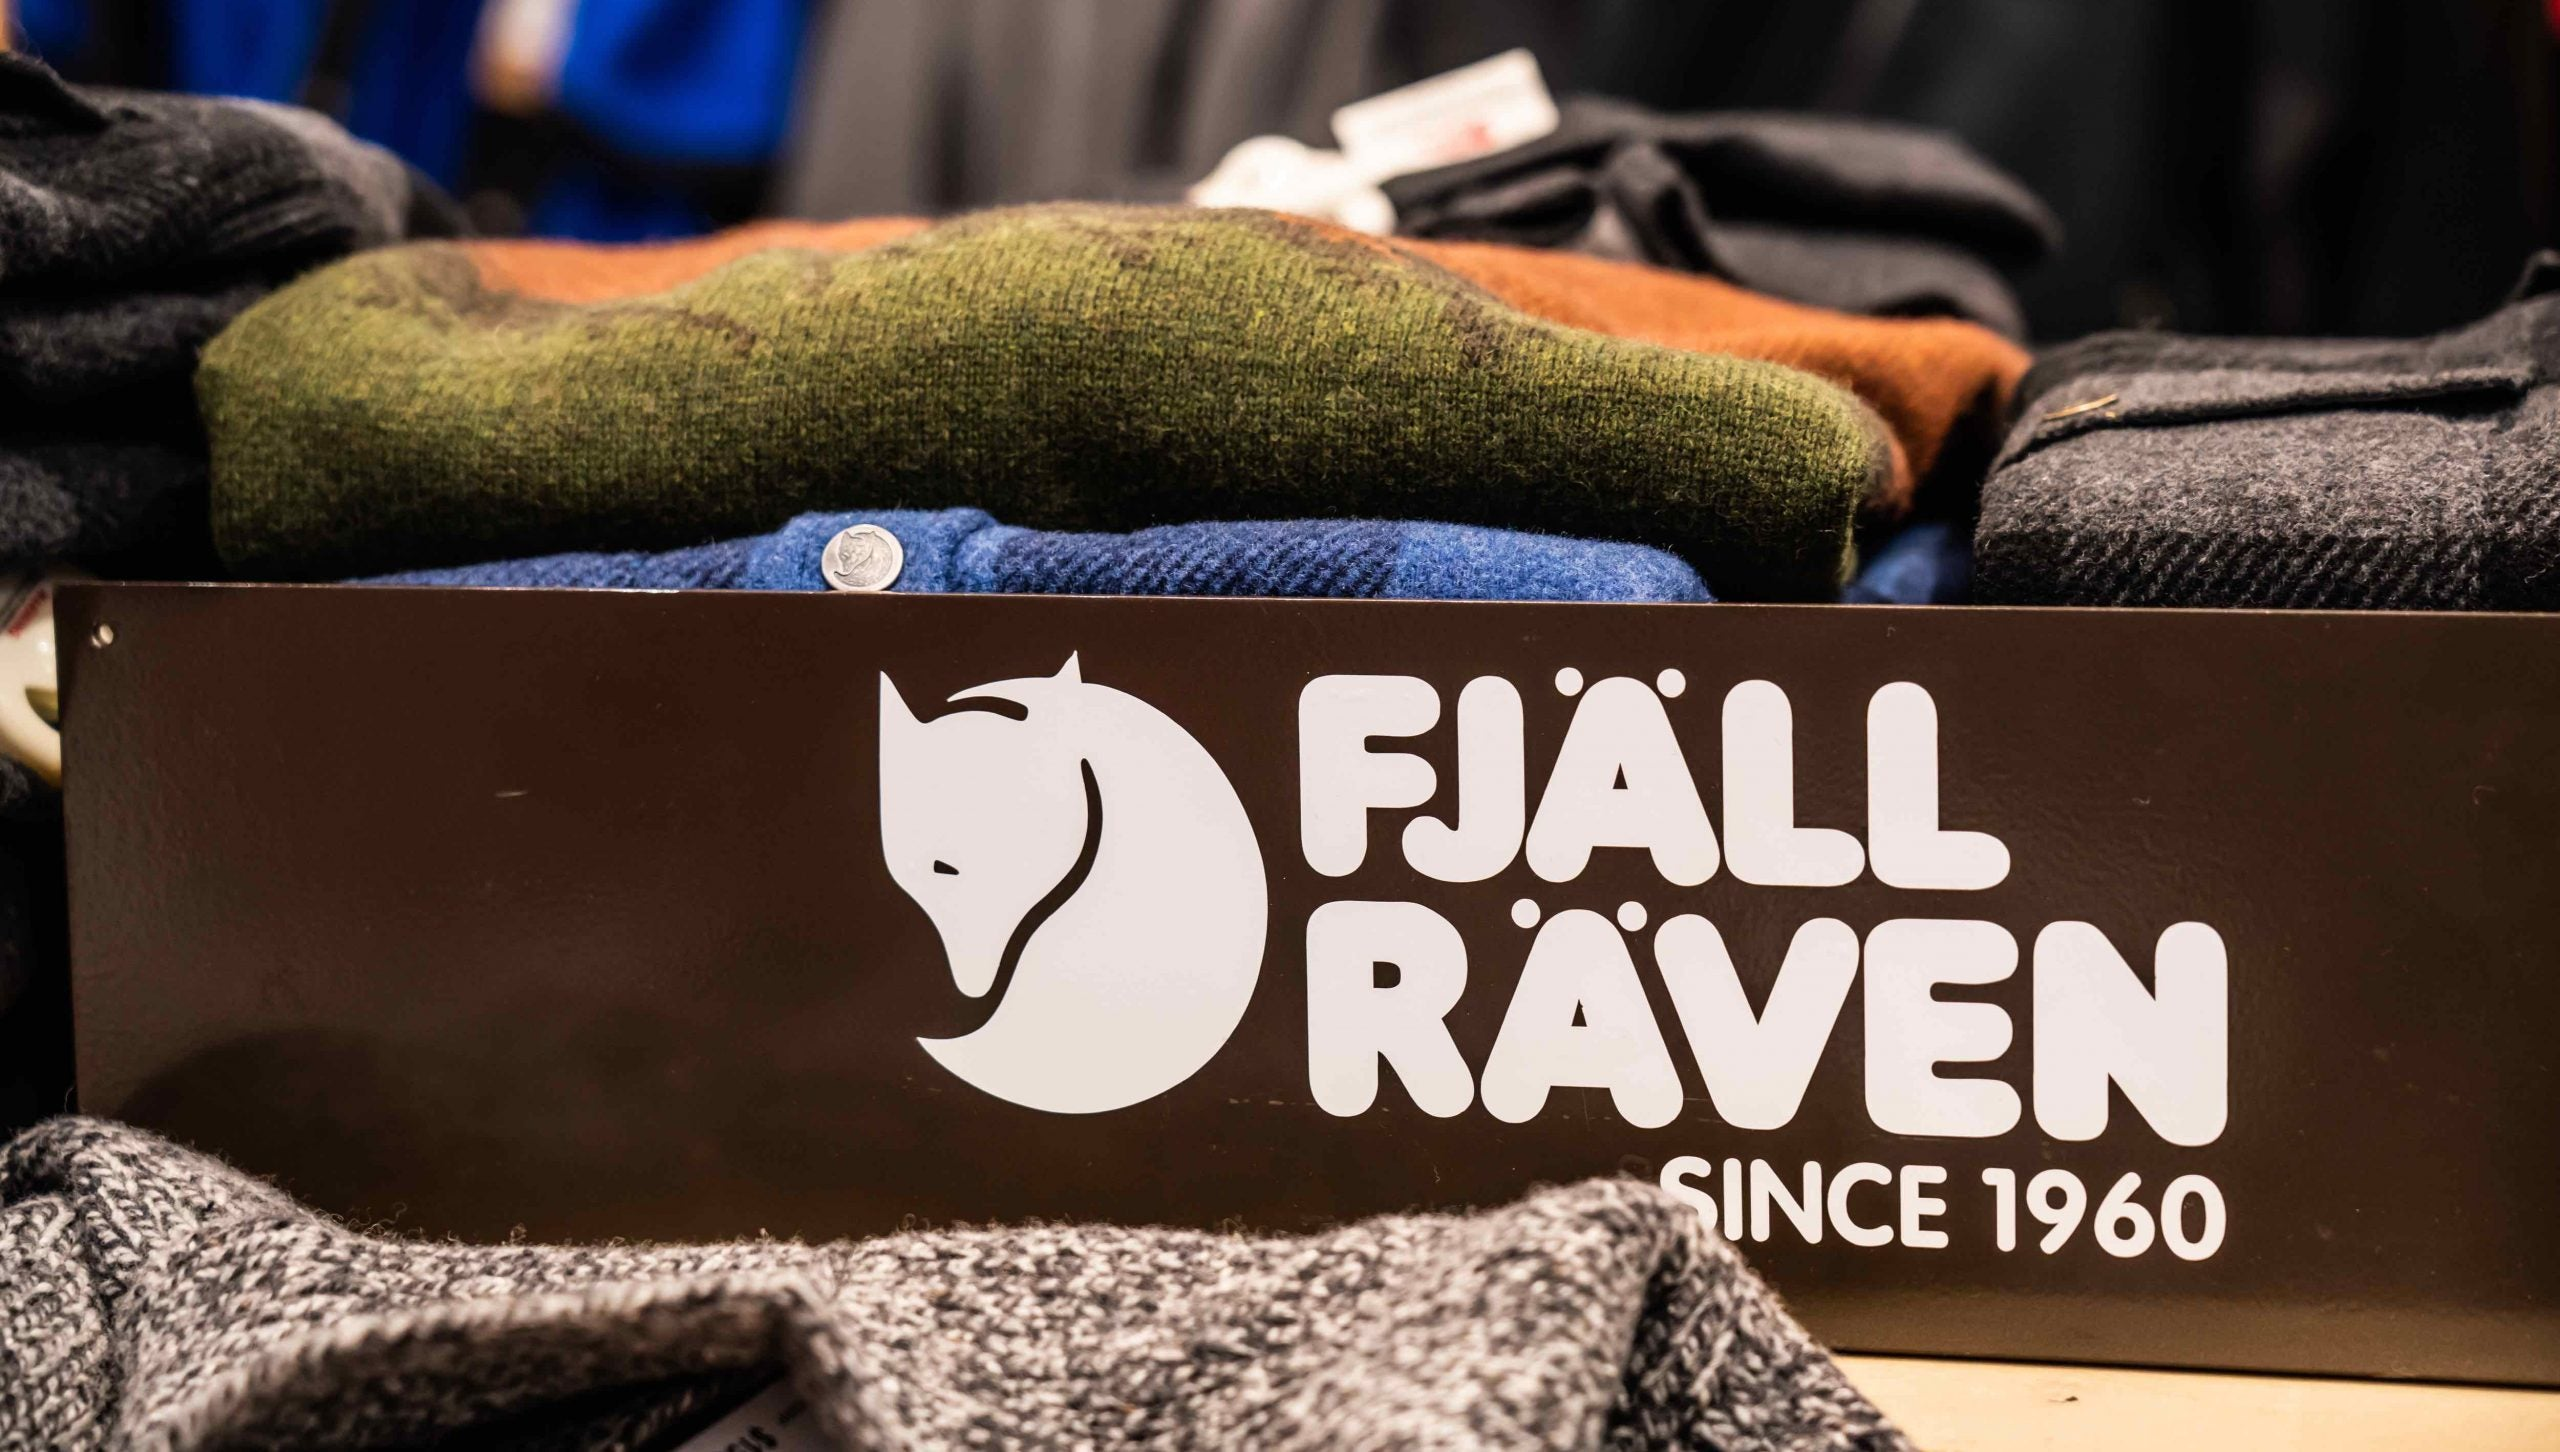 Fjallraven stall seen in a Macy's department store in New